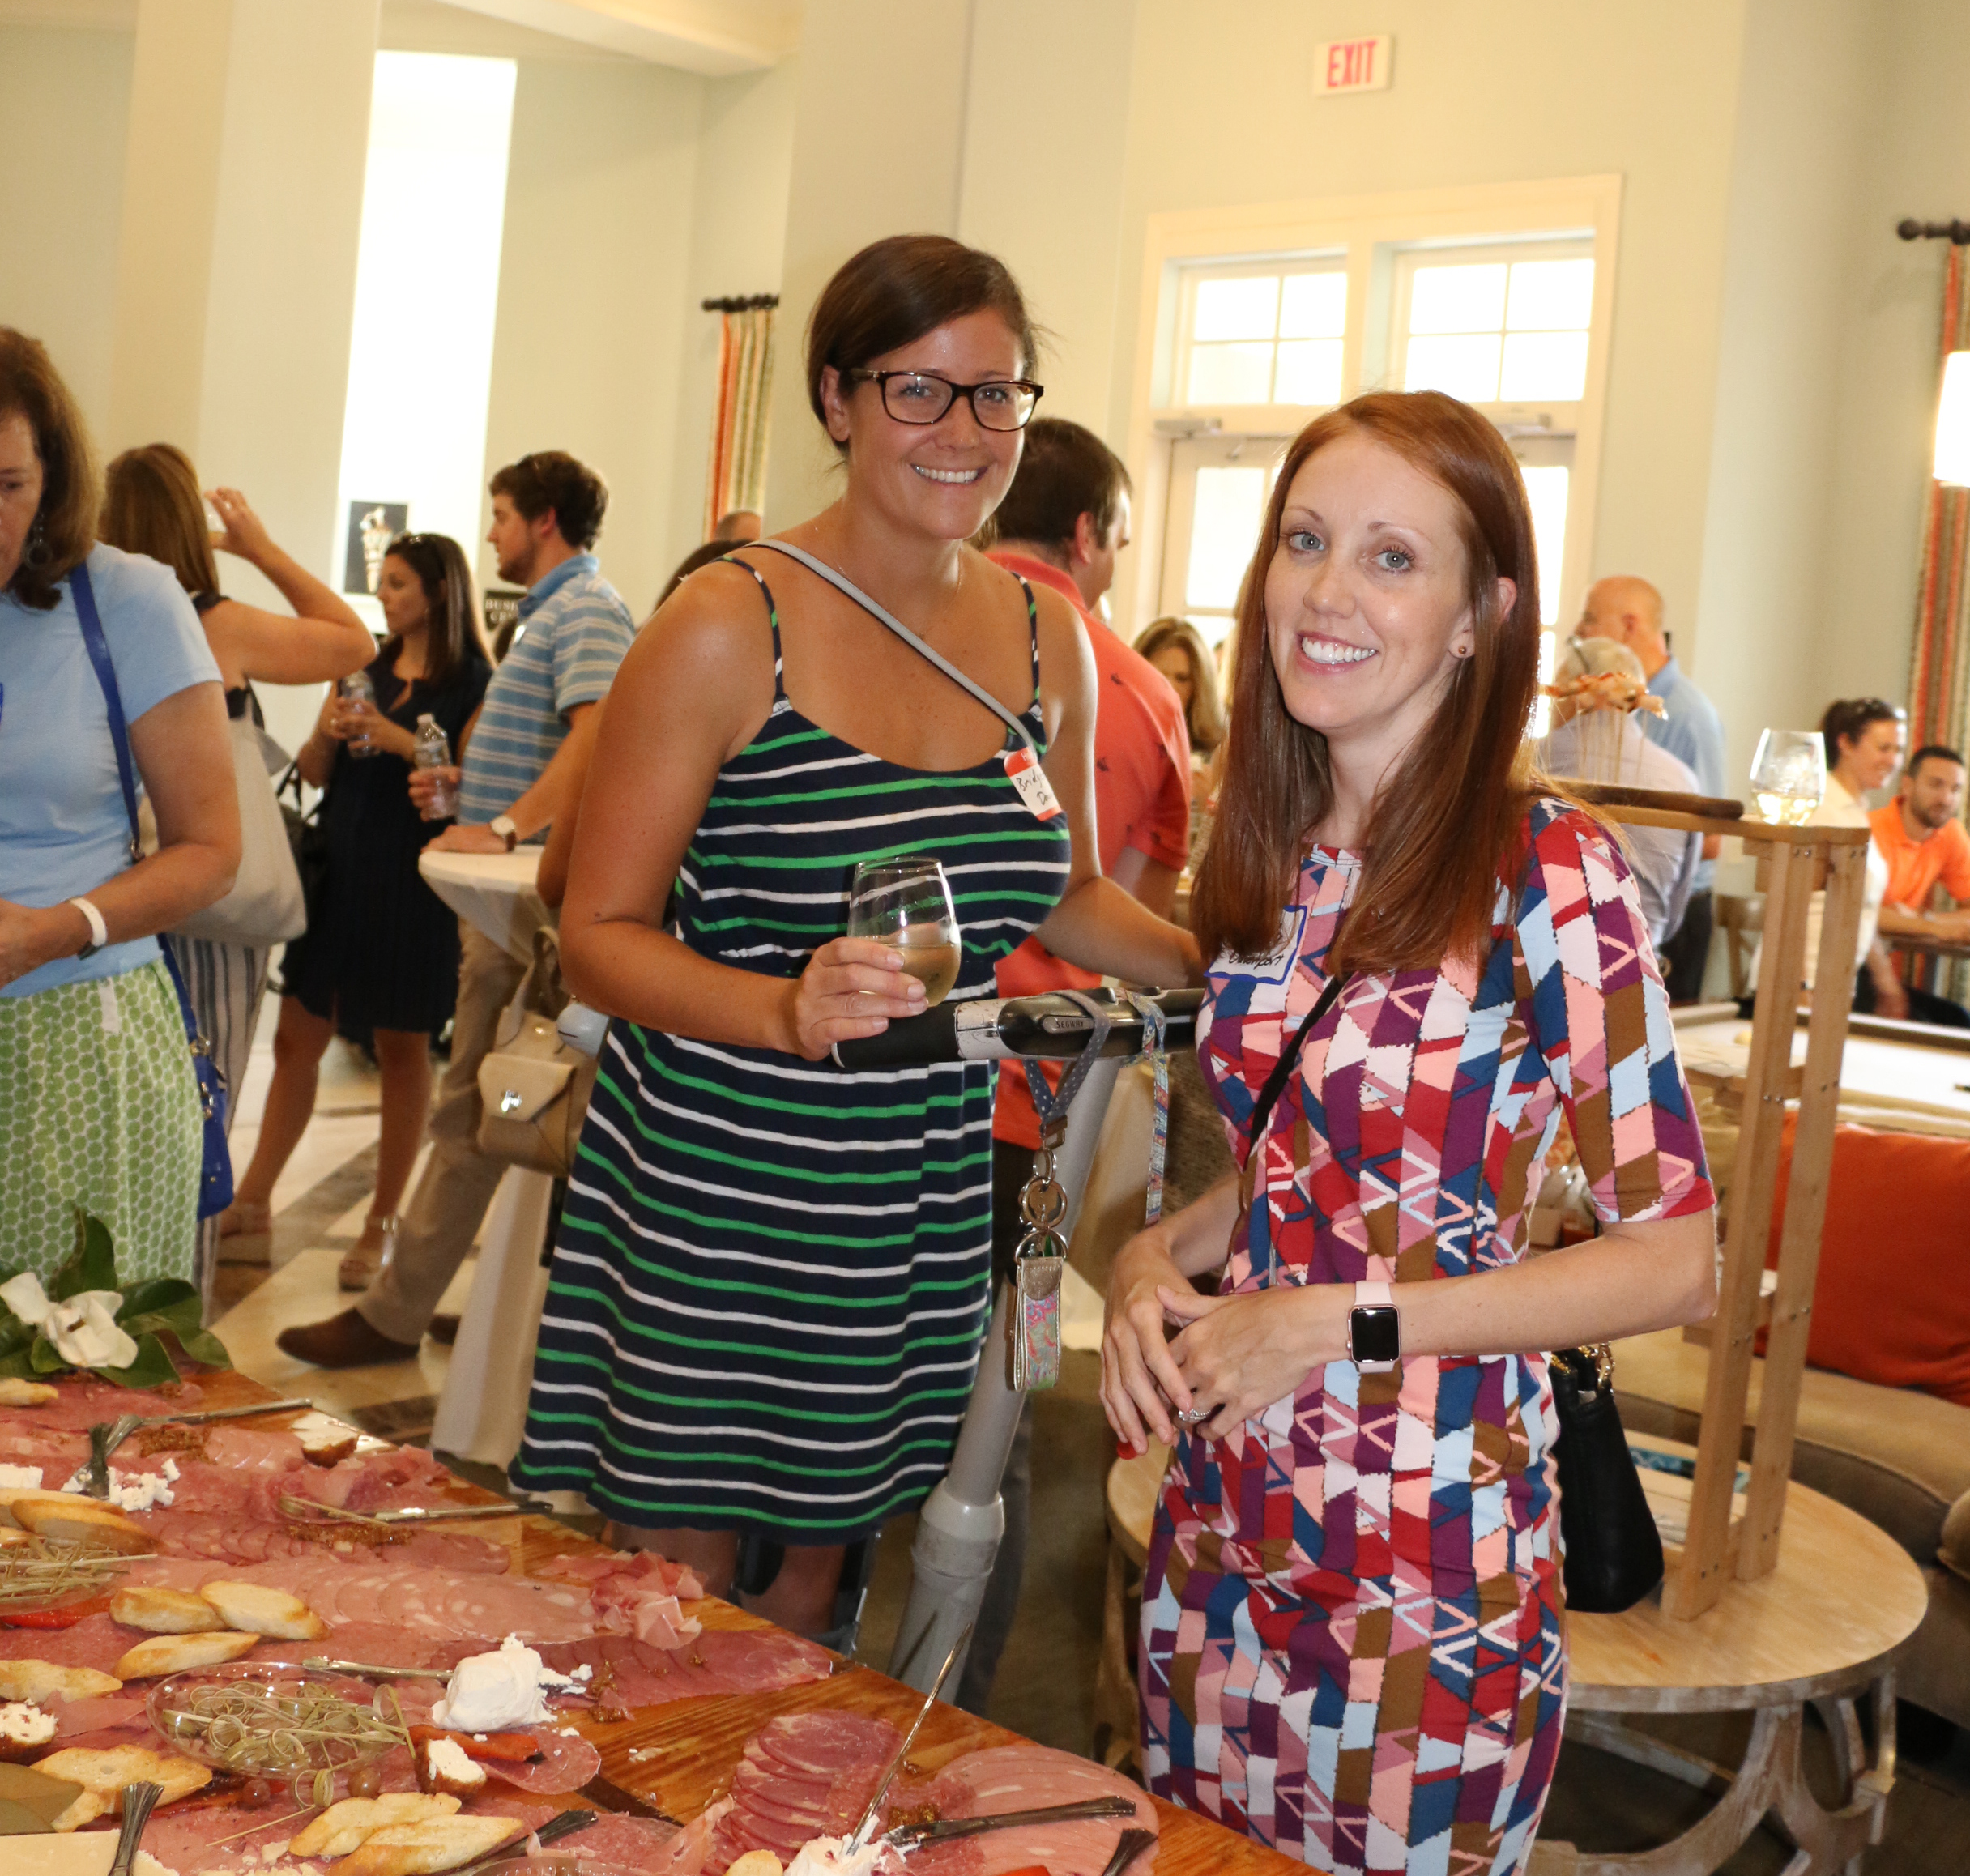 Bridget Downing and Amanda Davenport negotiate the food table inside!